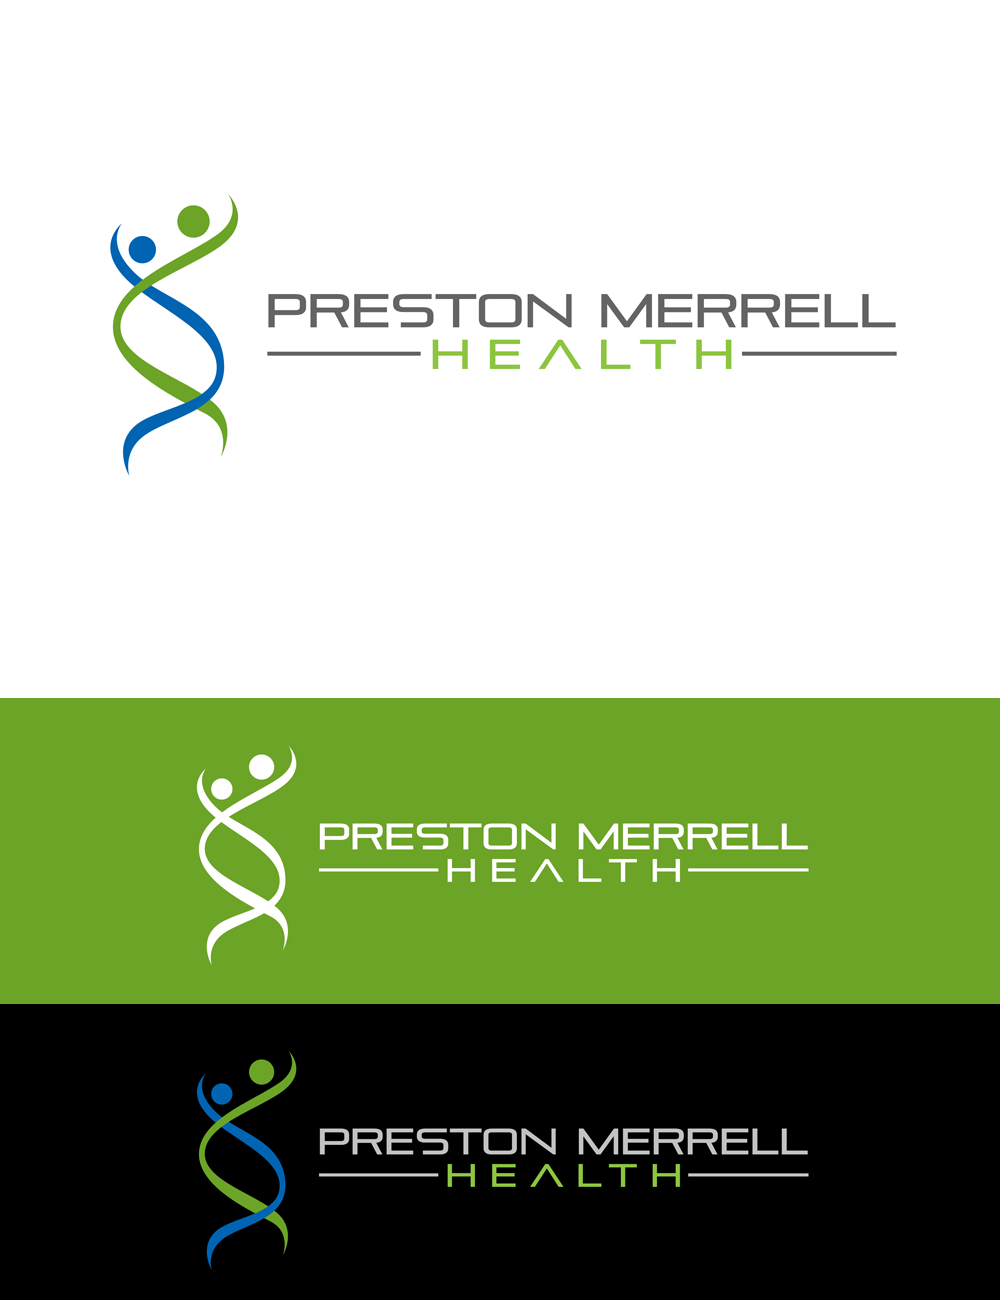 Logo Design by Robert Turla - Entry No. 263 in the Logo Design Contest Creative Logo Design for Preston Merrell Health.